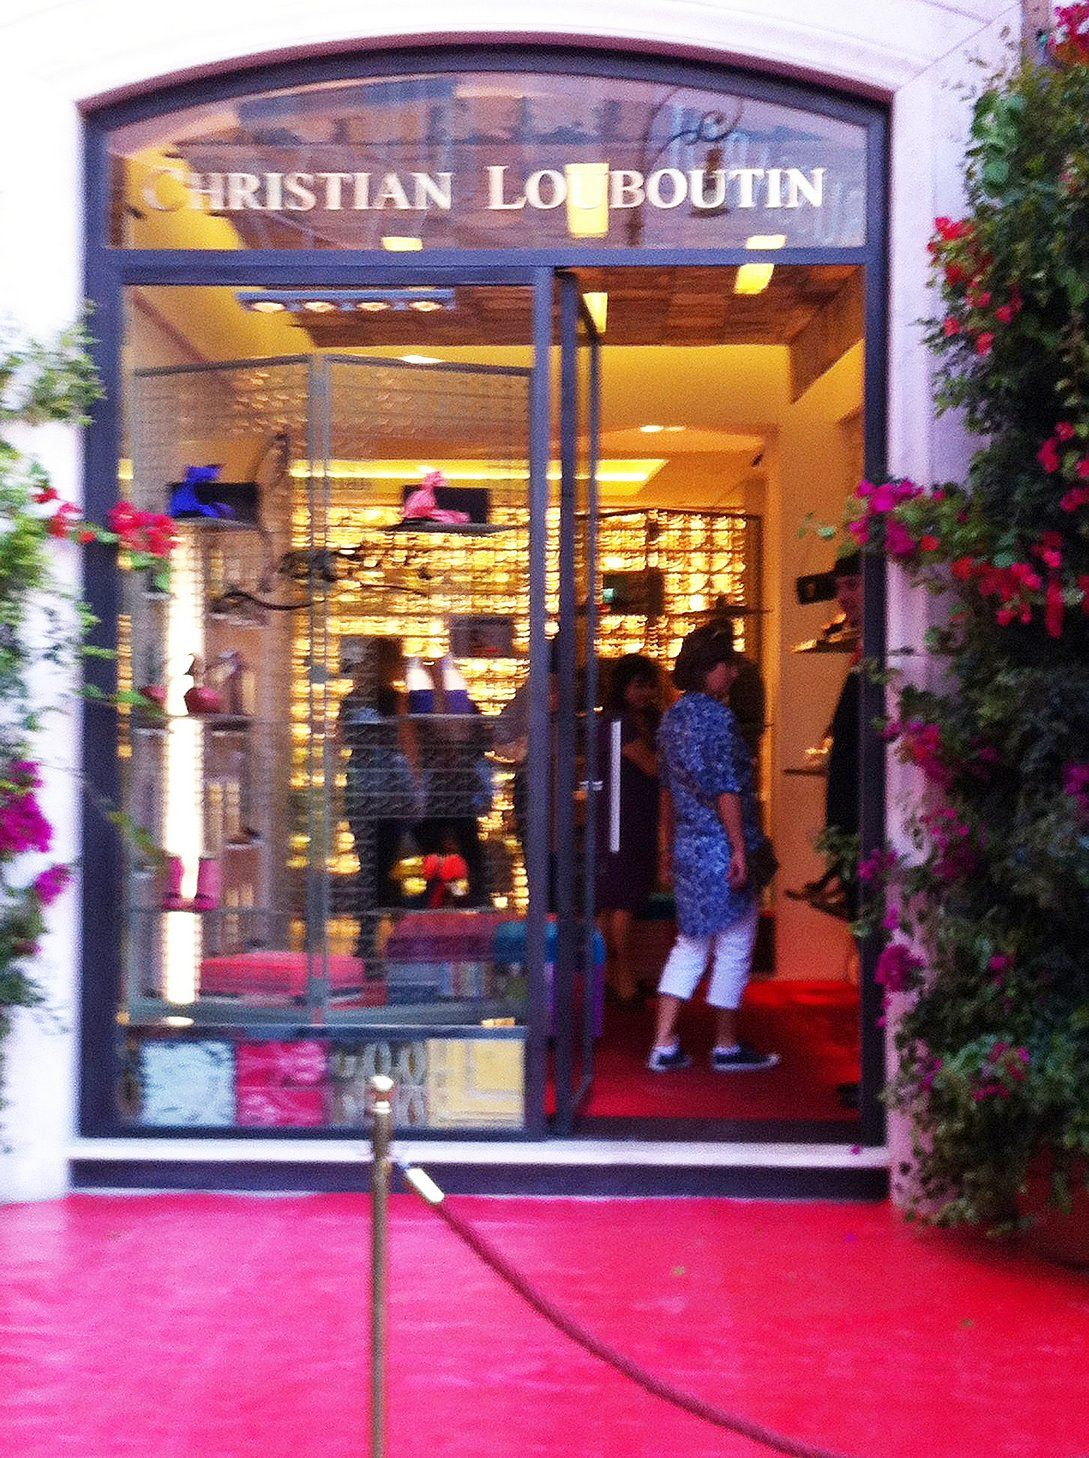 christian louboutin store venice italy